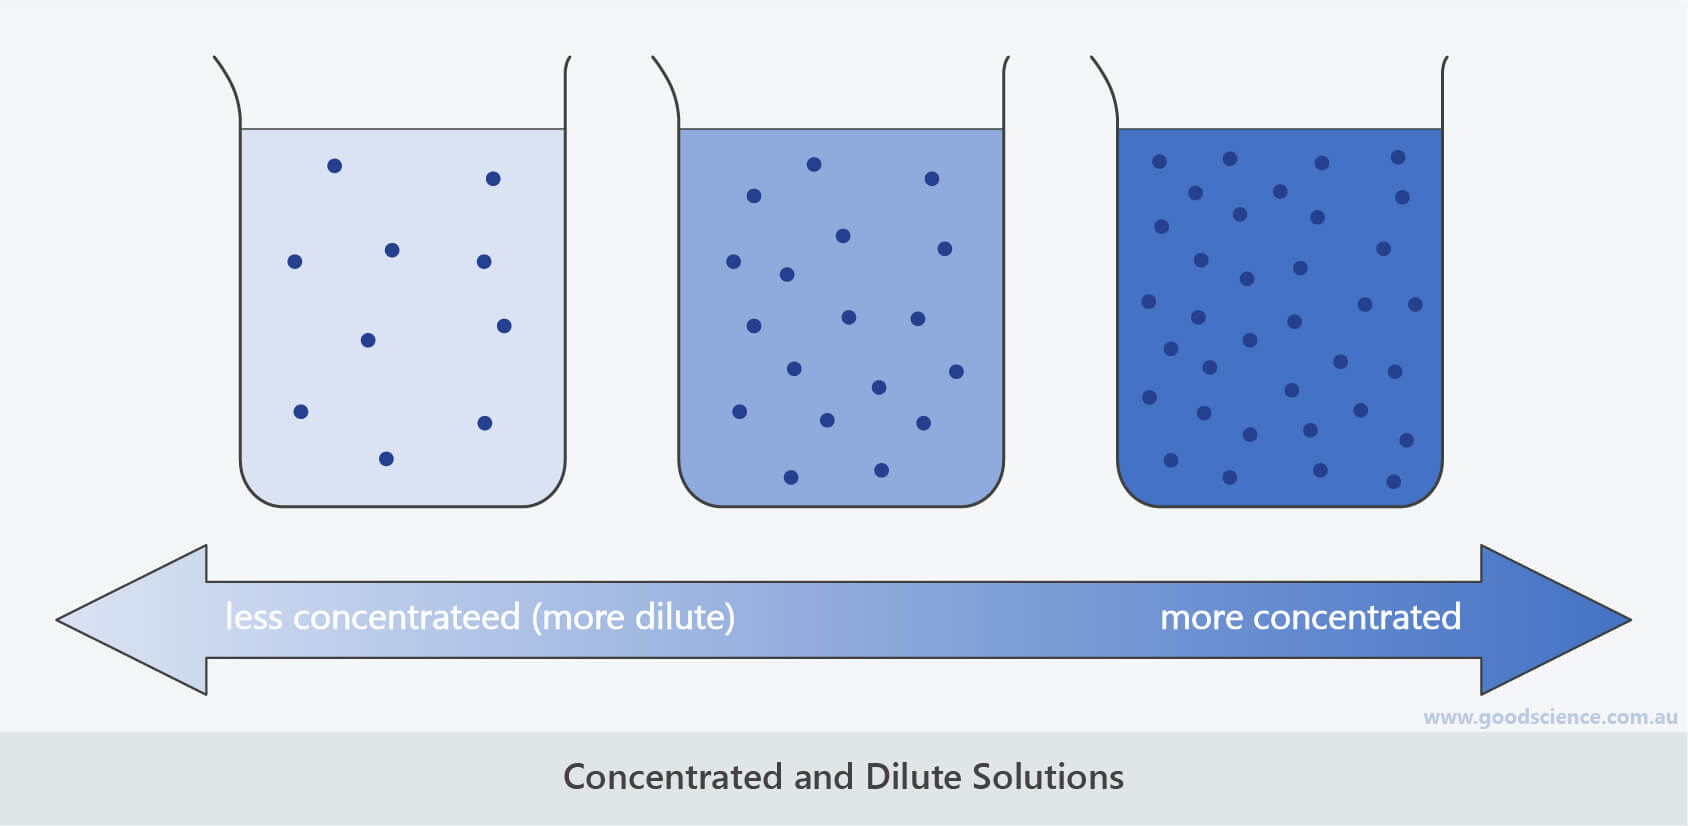 hight resolution of Solutions and Solubility   Good Science